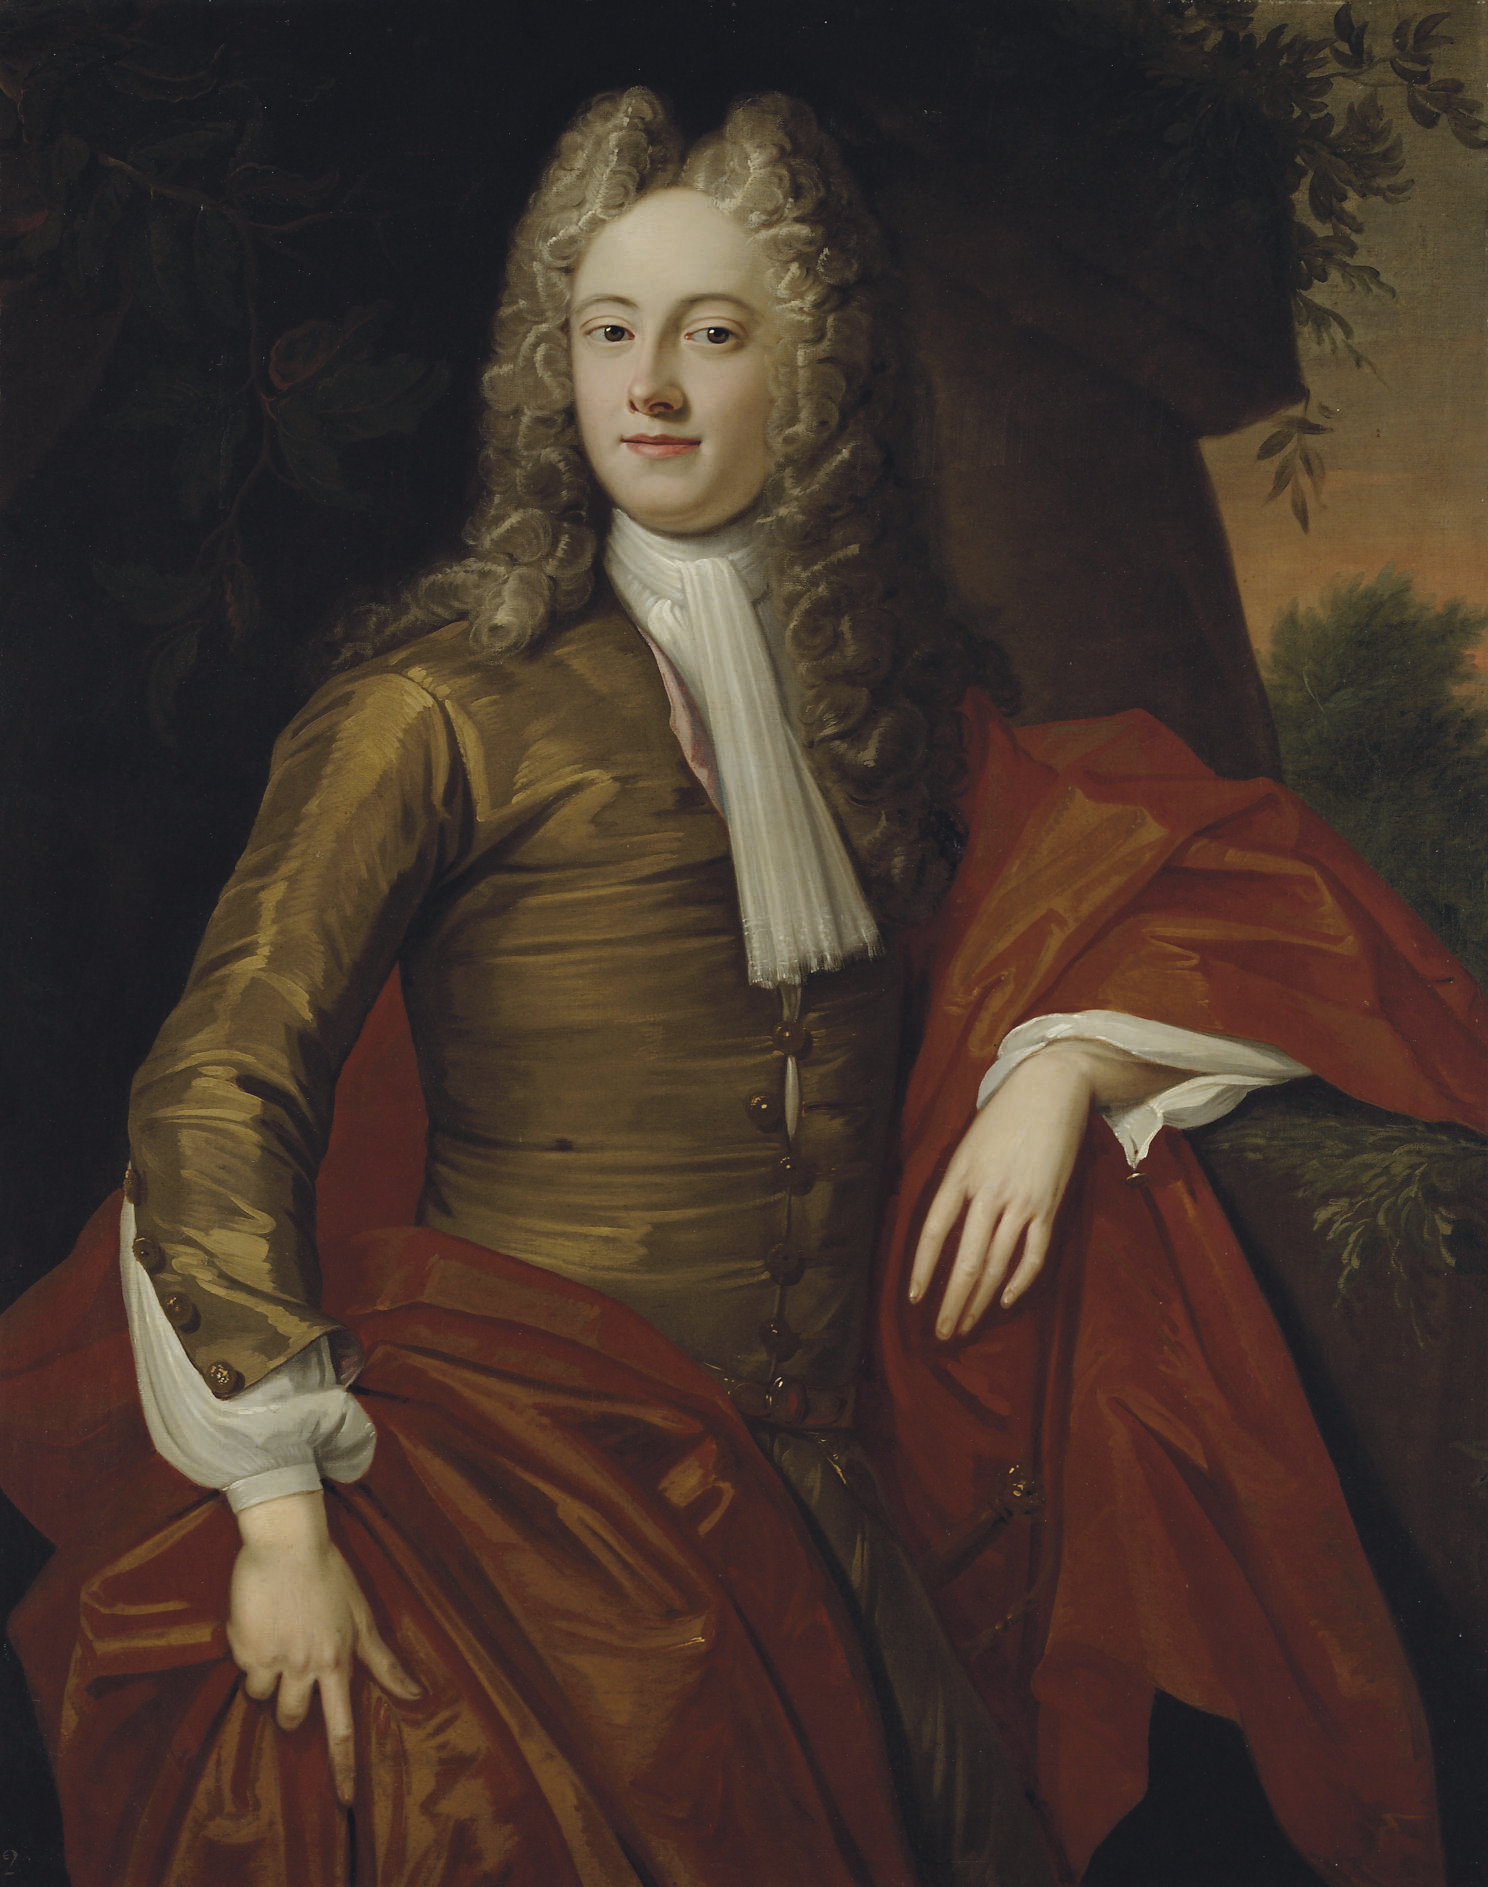 Portrait of John Keith, 3rd Earl of Kintore (c. 1699-1758), three-quarter-length, in a brown coat and a red mantle, in a landscape